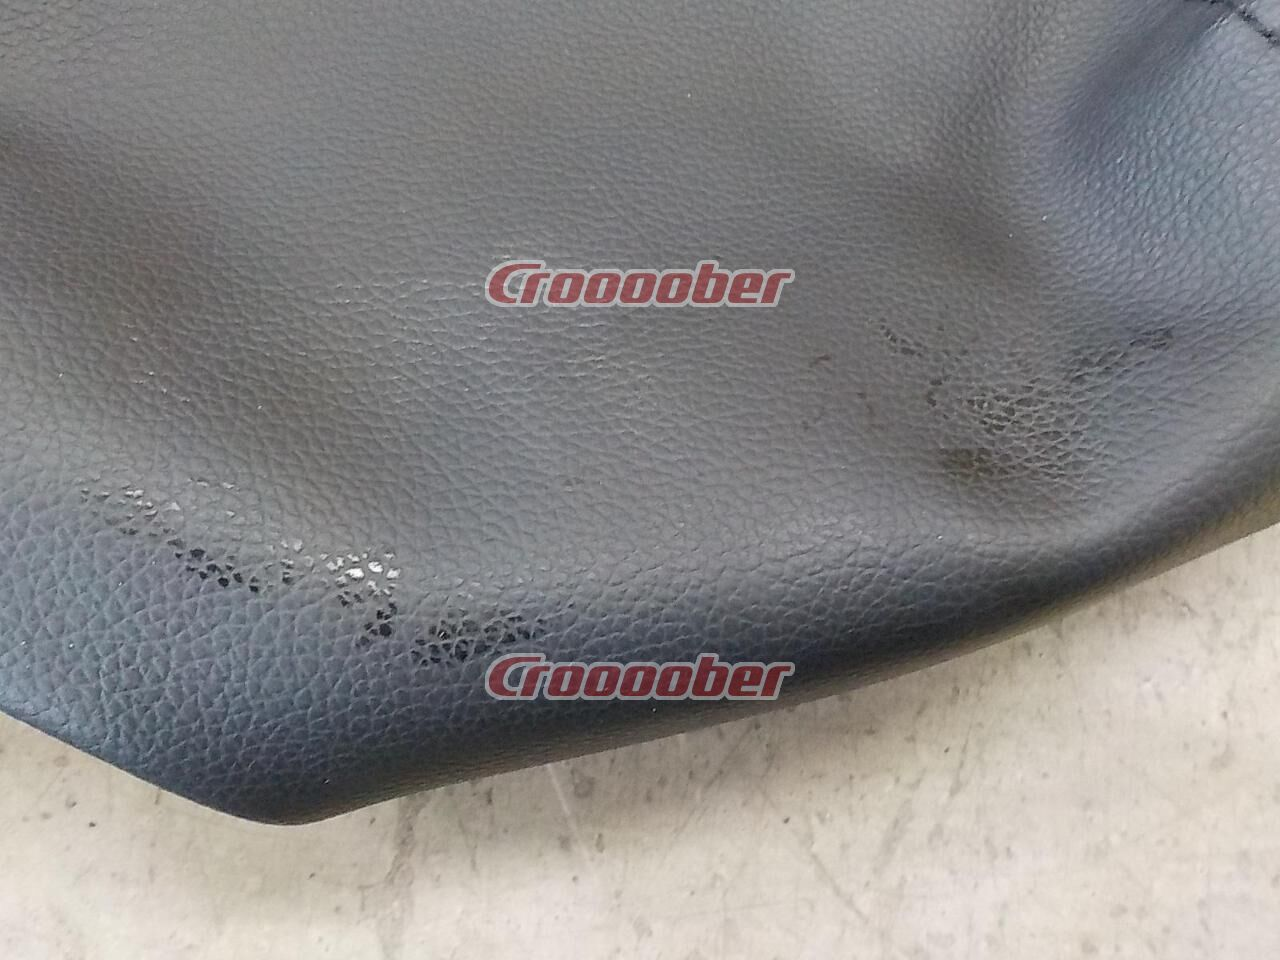 manufacturer unknown fit sheet cover seat covers croooober